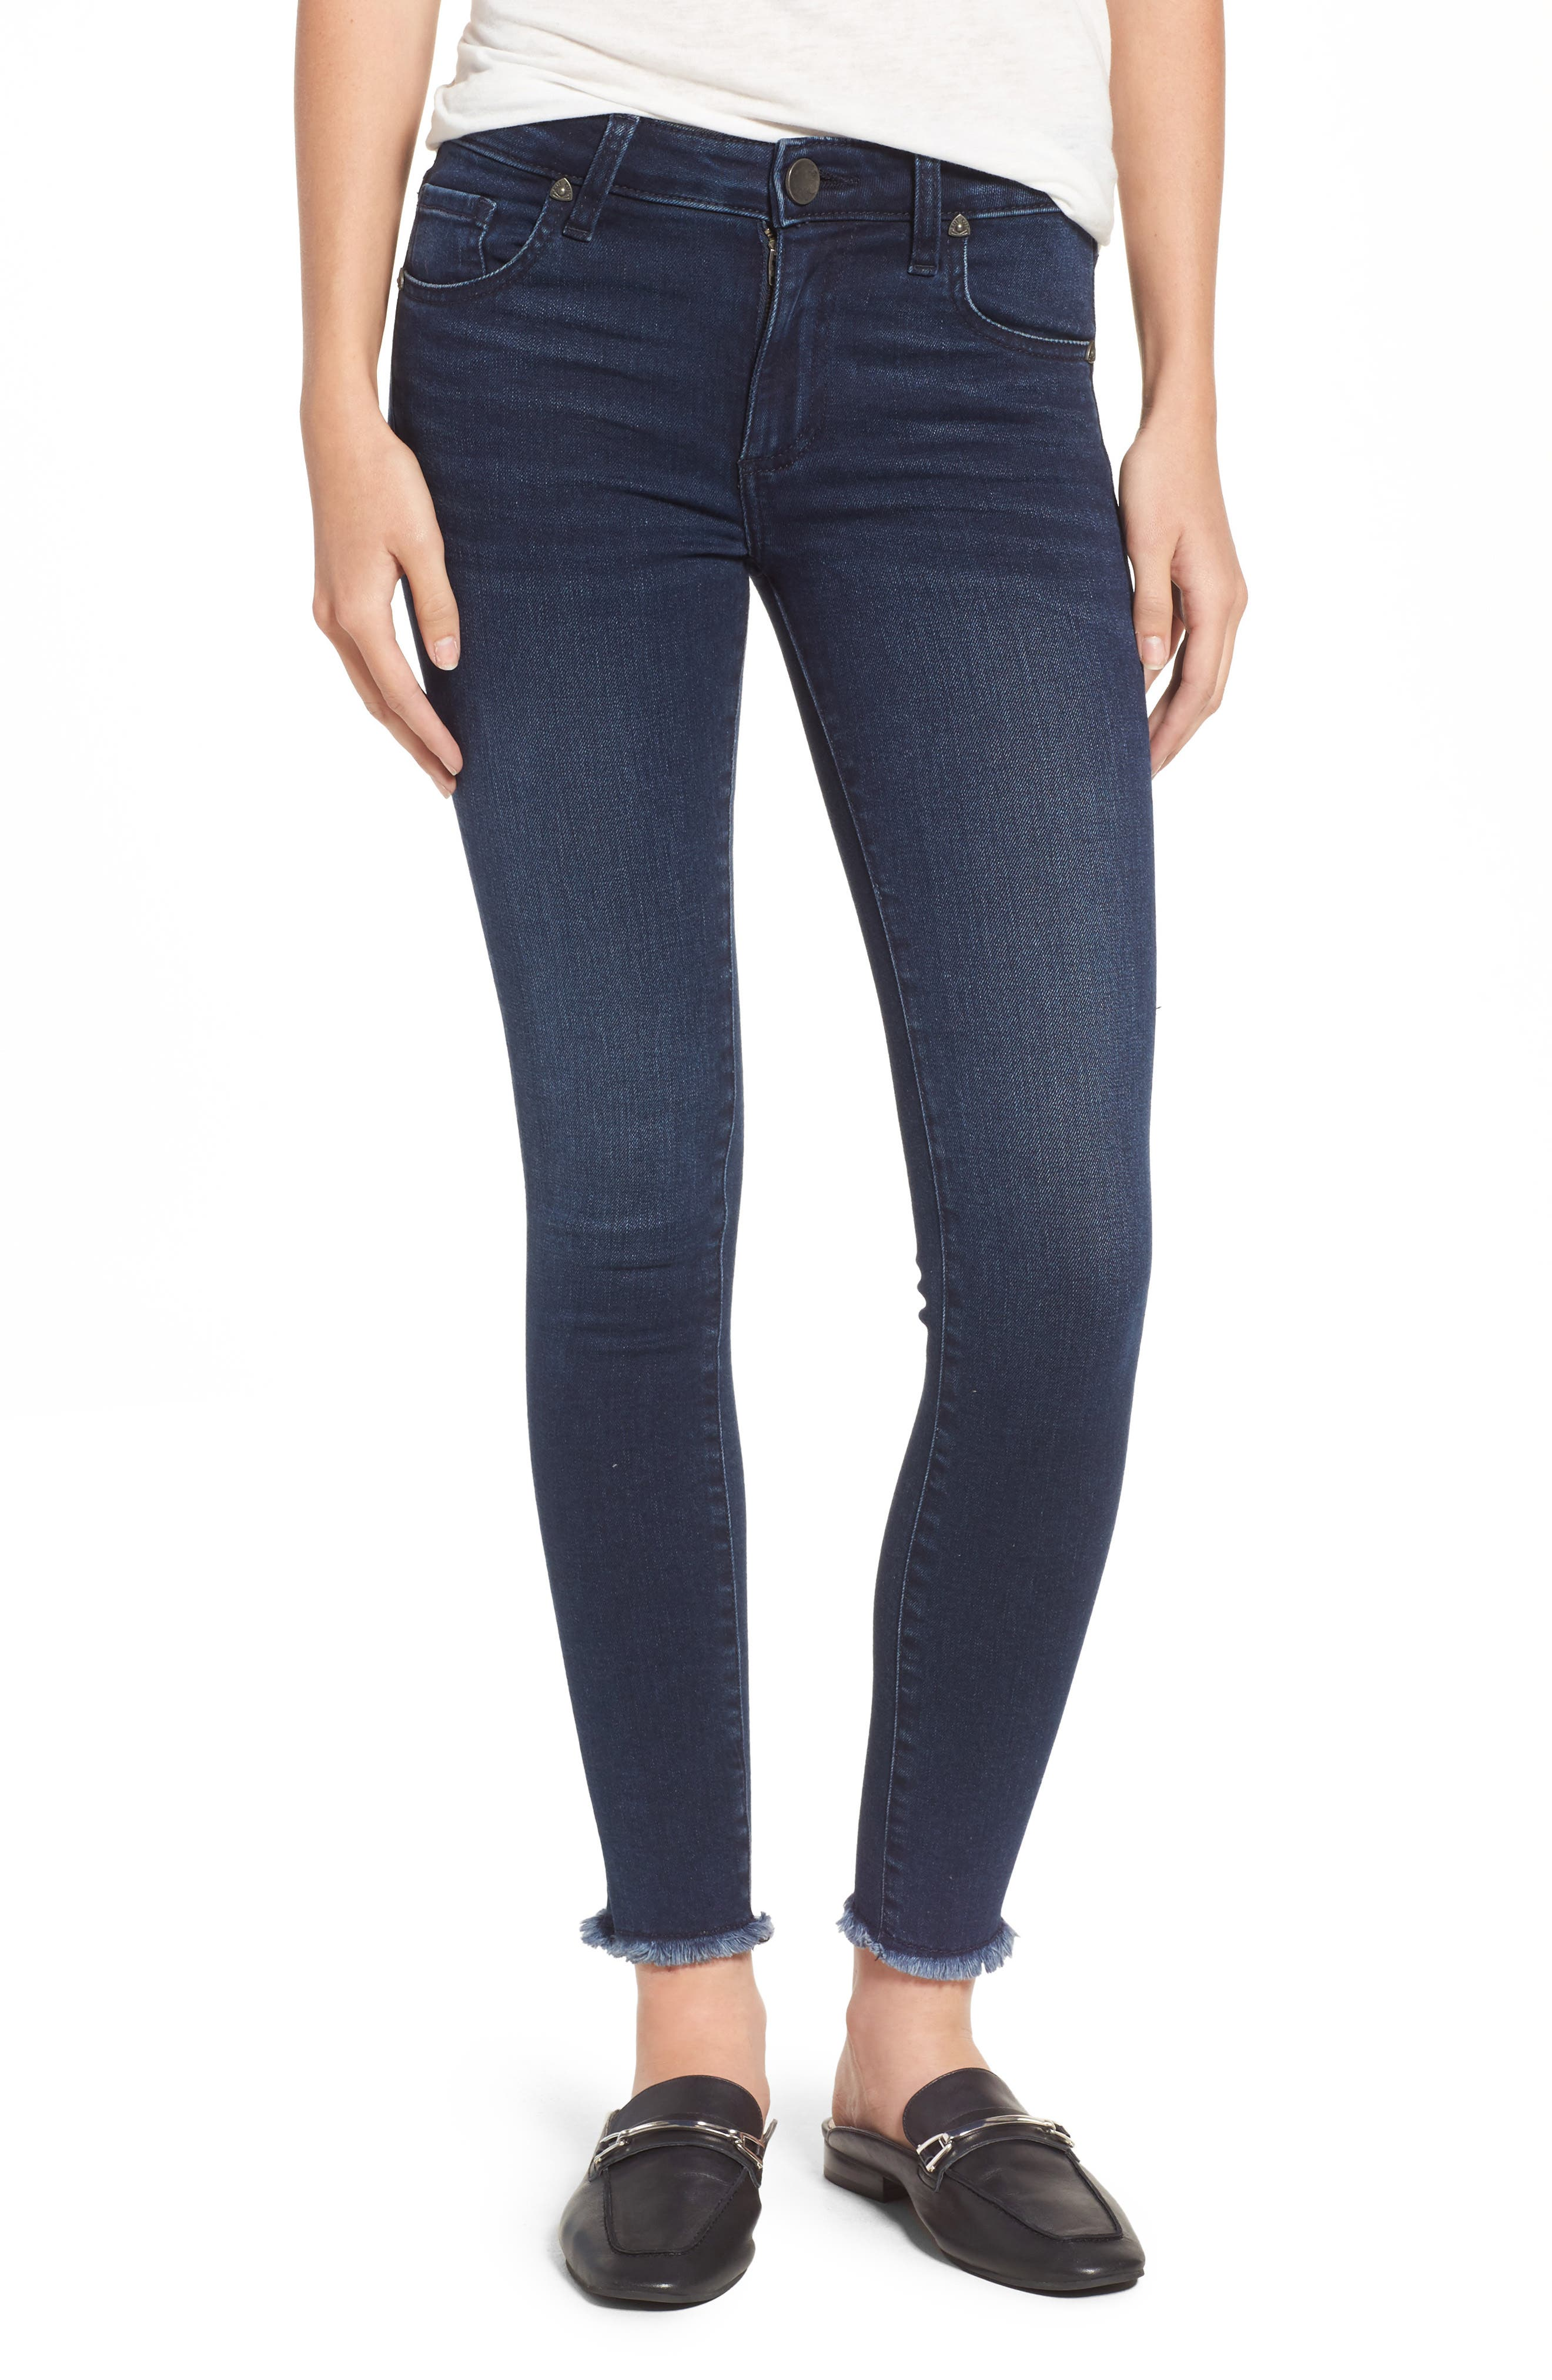 Connie Skinny Ankle Jeans,                             Main thumbnail 1, color,                             460